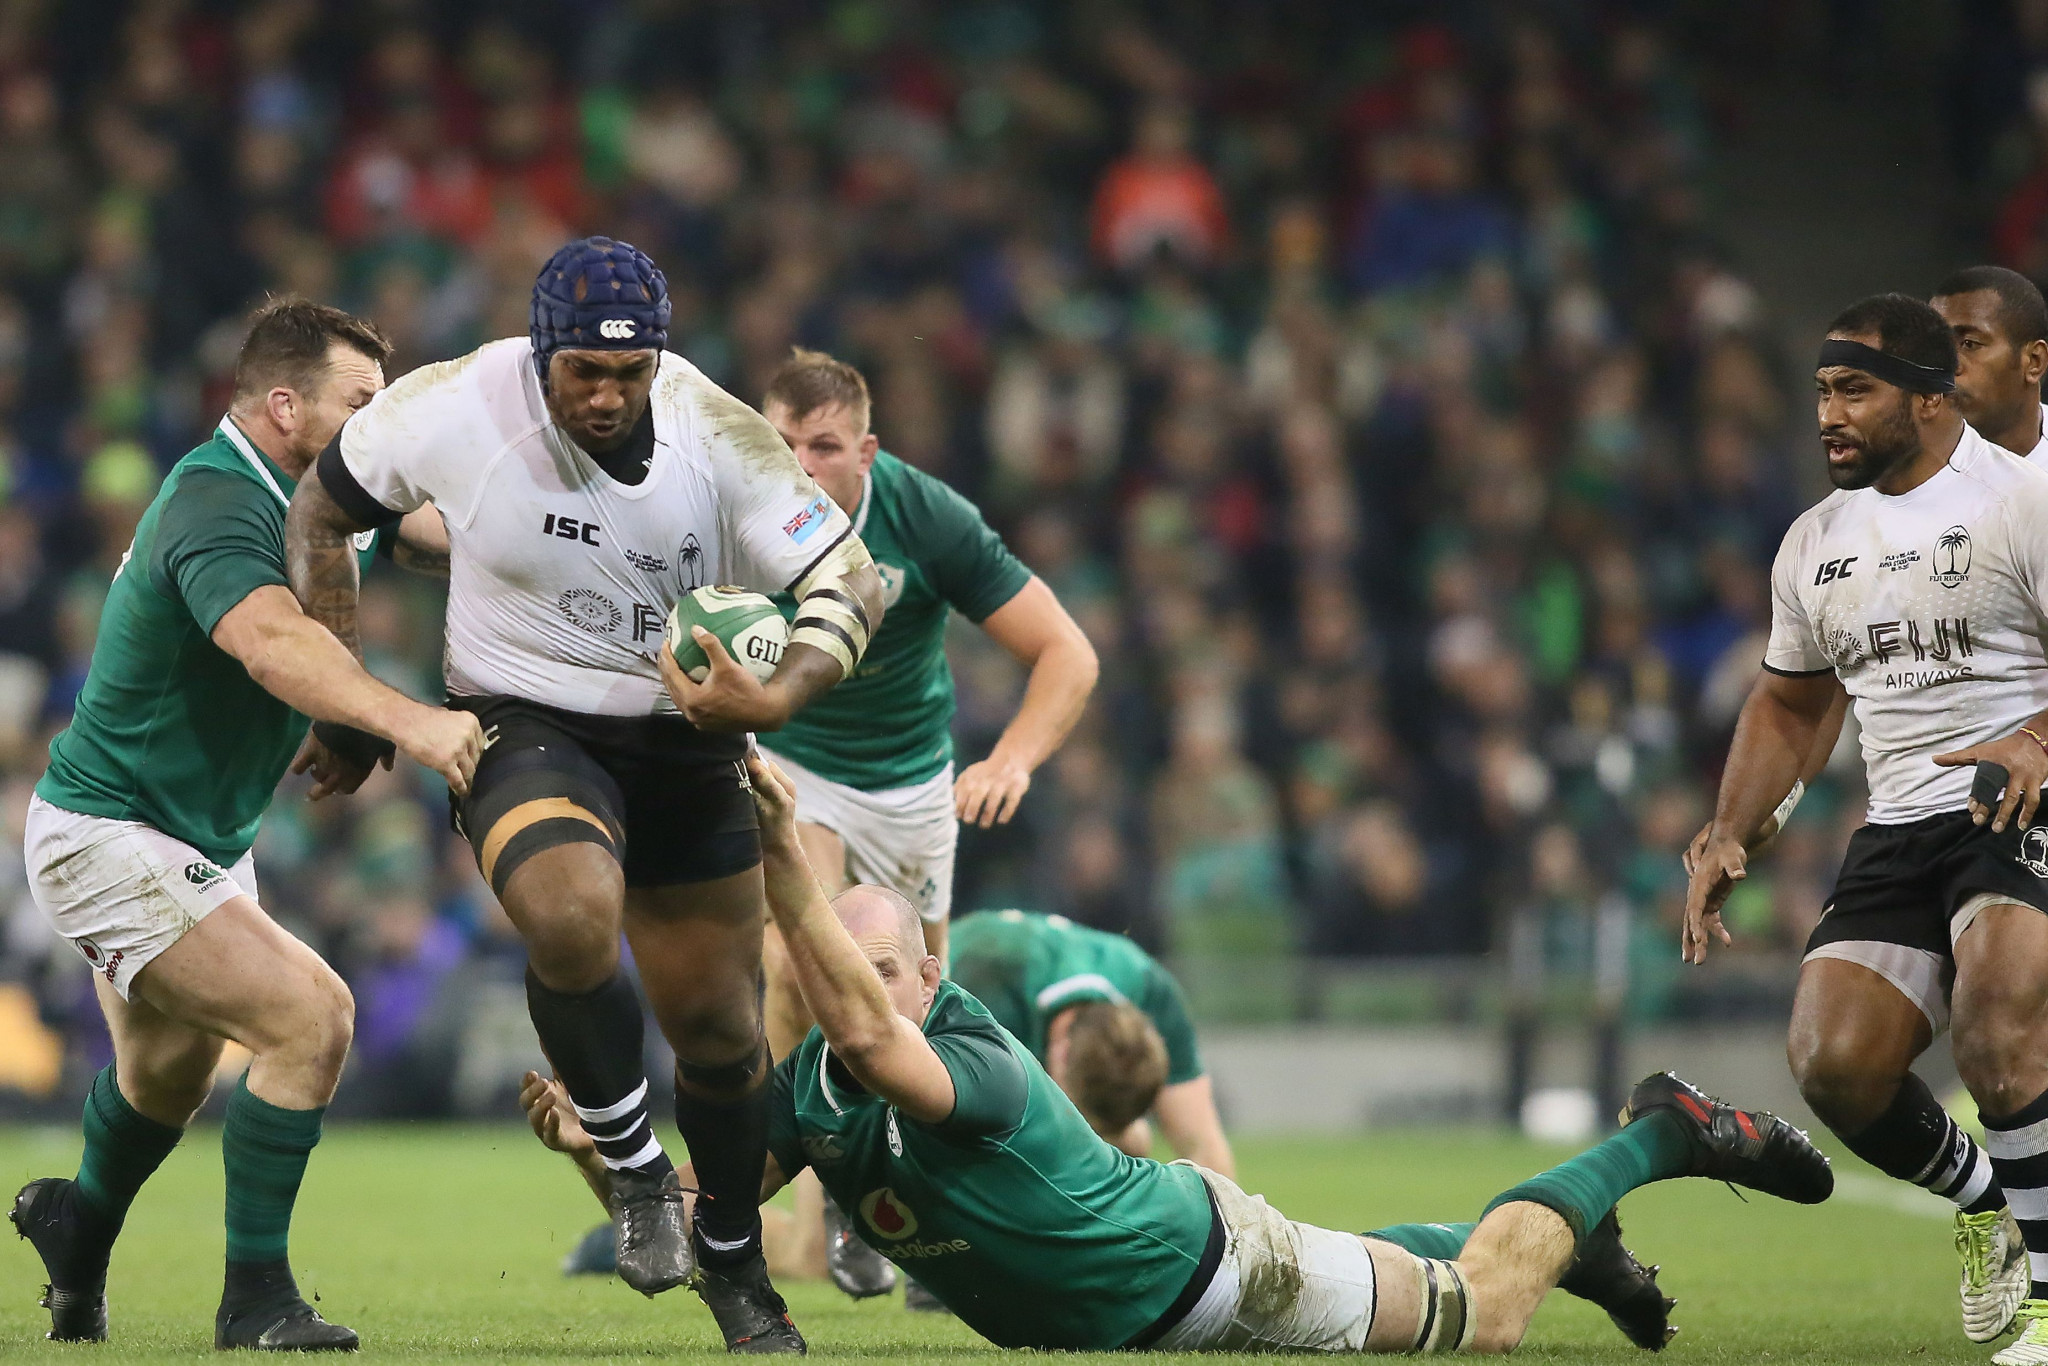 Fiji last faced Ireland in 2017 when they suffered a 23-20 defeat at the Aviva Stadium in Dublin ©Getty Images